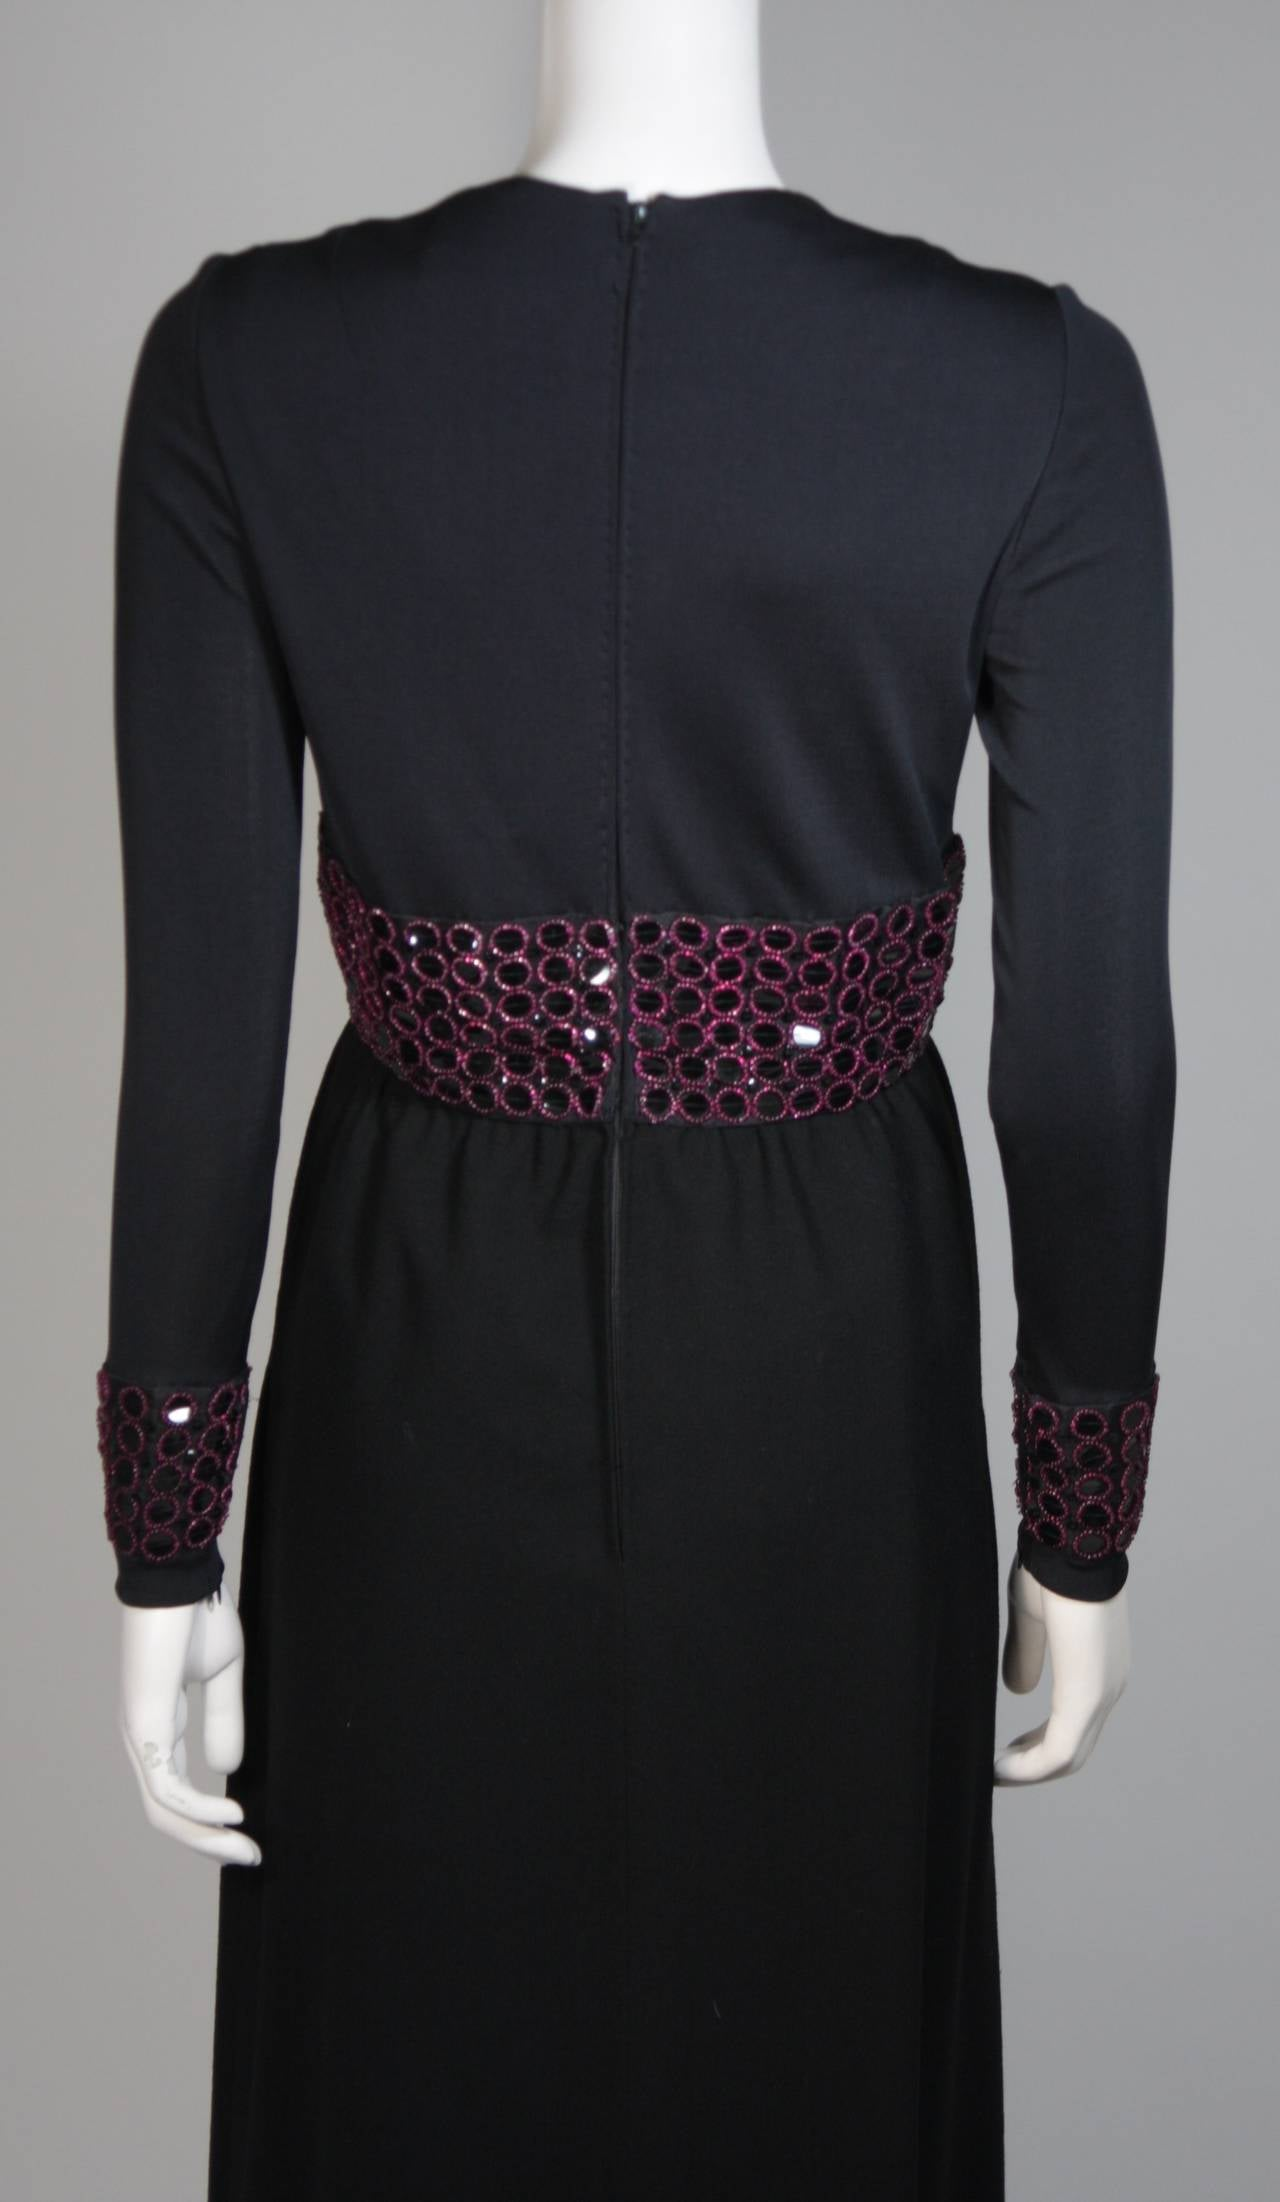 Chester Weinberg Black Long Sleeve Gown With Beaded Waist Size S M 9